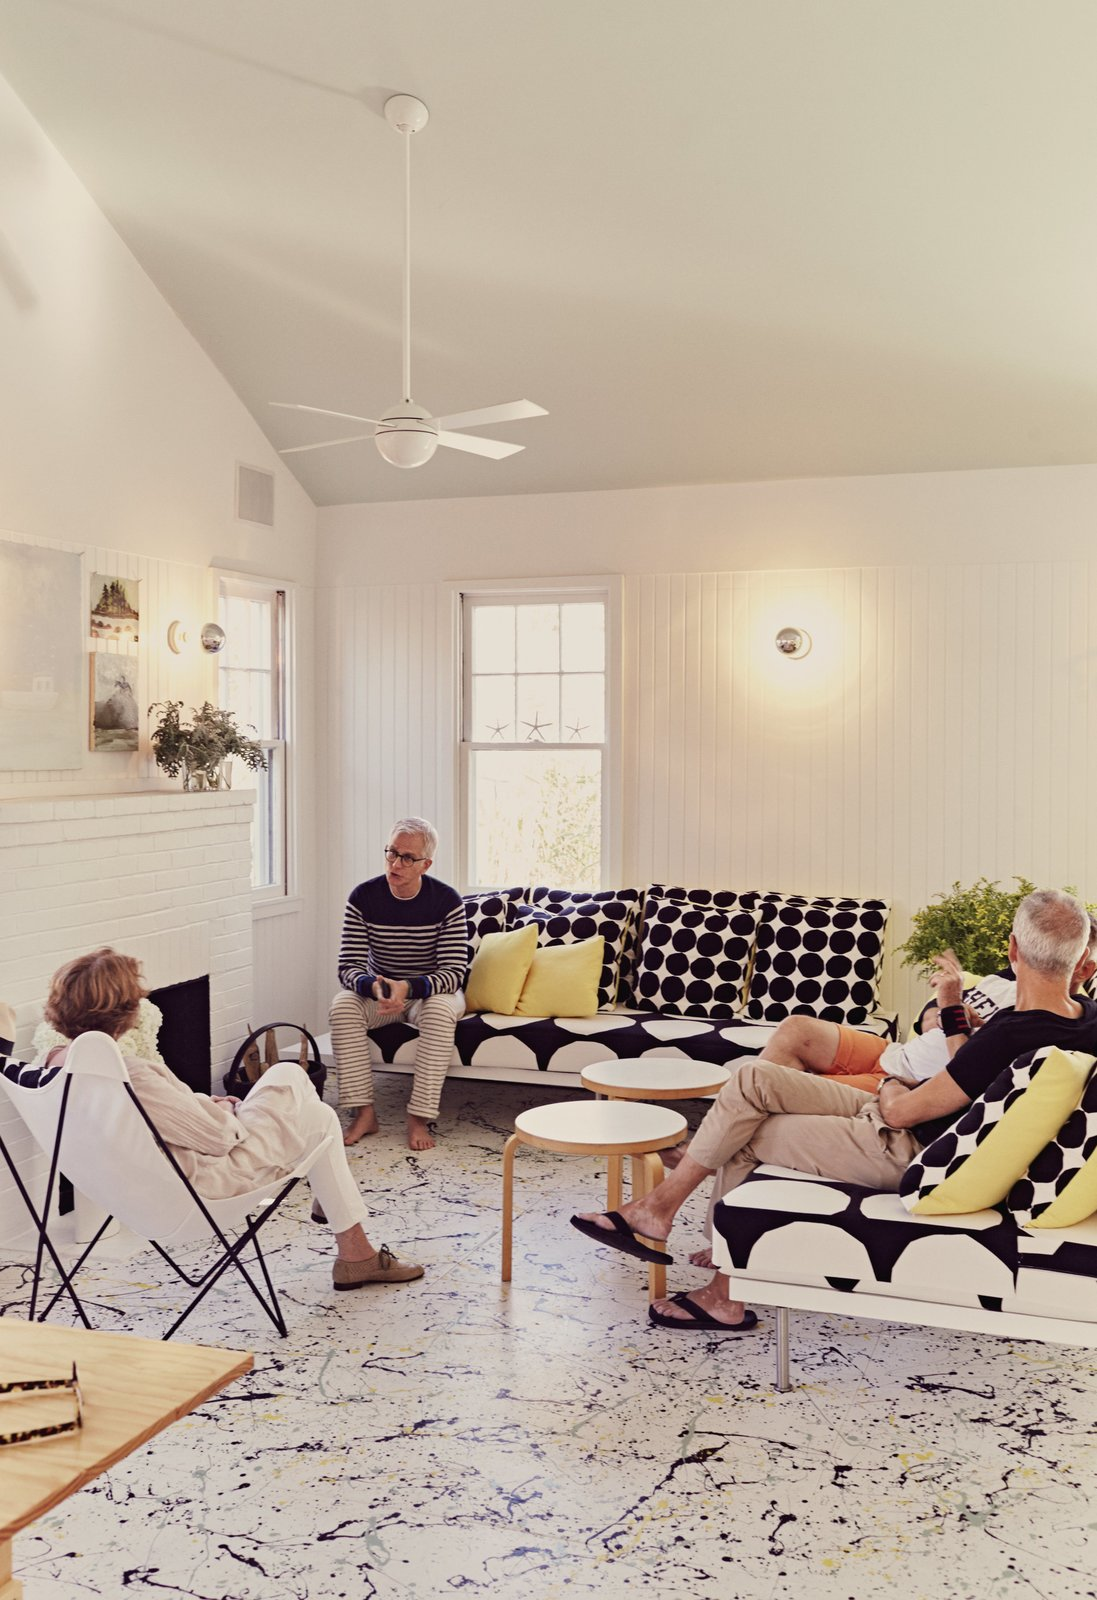 Living Room, Chair, Coffee Tables, End Tables, Sofa, Table, and Wall Lighting Residents Ann and Tony Spagnola sit with their architects, Peter Stamberg and Paul Aferiat, in front of the whitewashed brick fireplace in the living room. A vintage Butterfly chair joins custom sofas designed by the architects. Coffee tables by Alvar Aalto for Artek and pillows by Marimekko create a clean, Finnish-inflected environment.  Photo 2 of 5 in Damaged by Superstorm Sandy, a Fire Island Cottage is Rebuilt